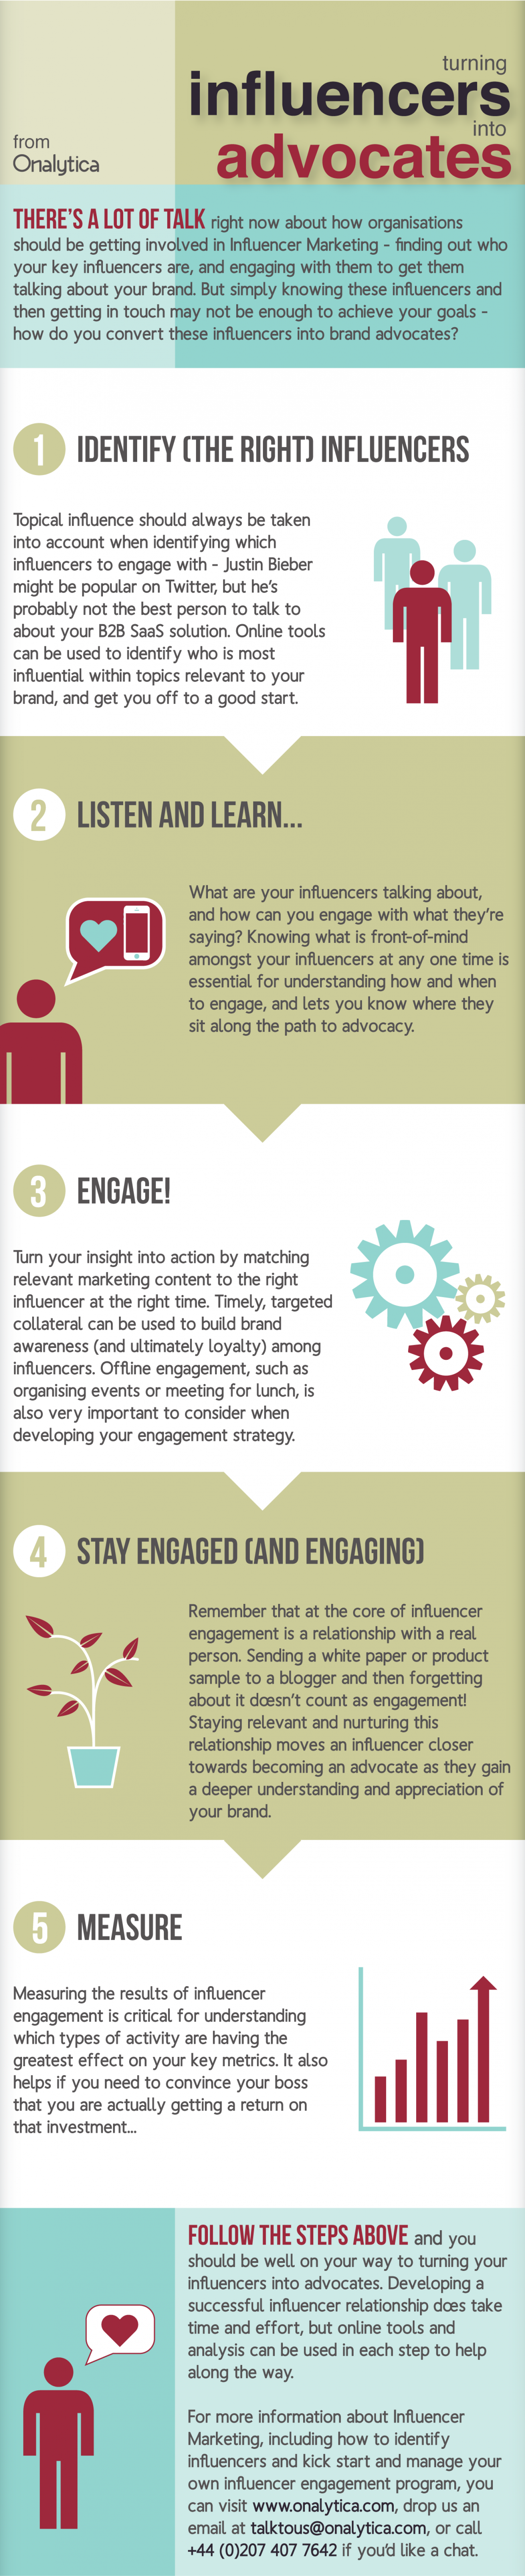 How to Turn Influencers into Advocates Infographic